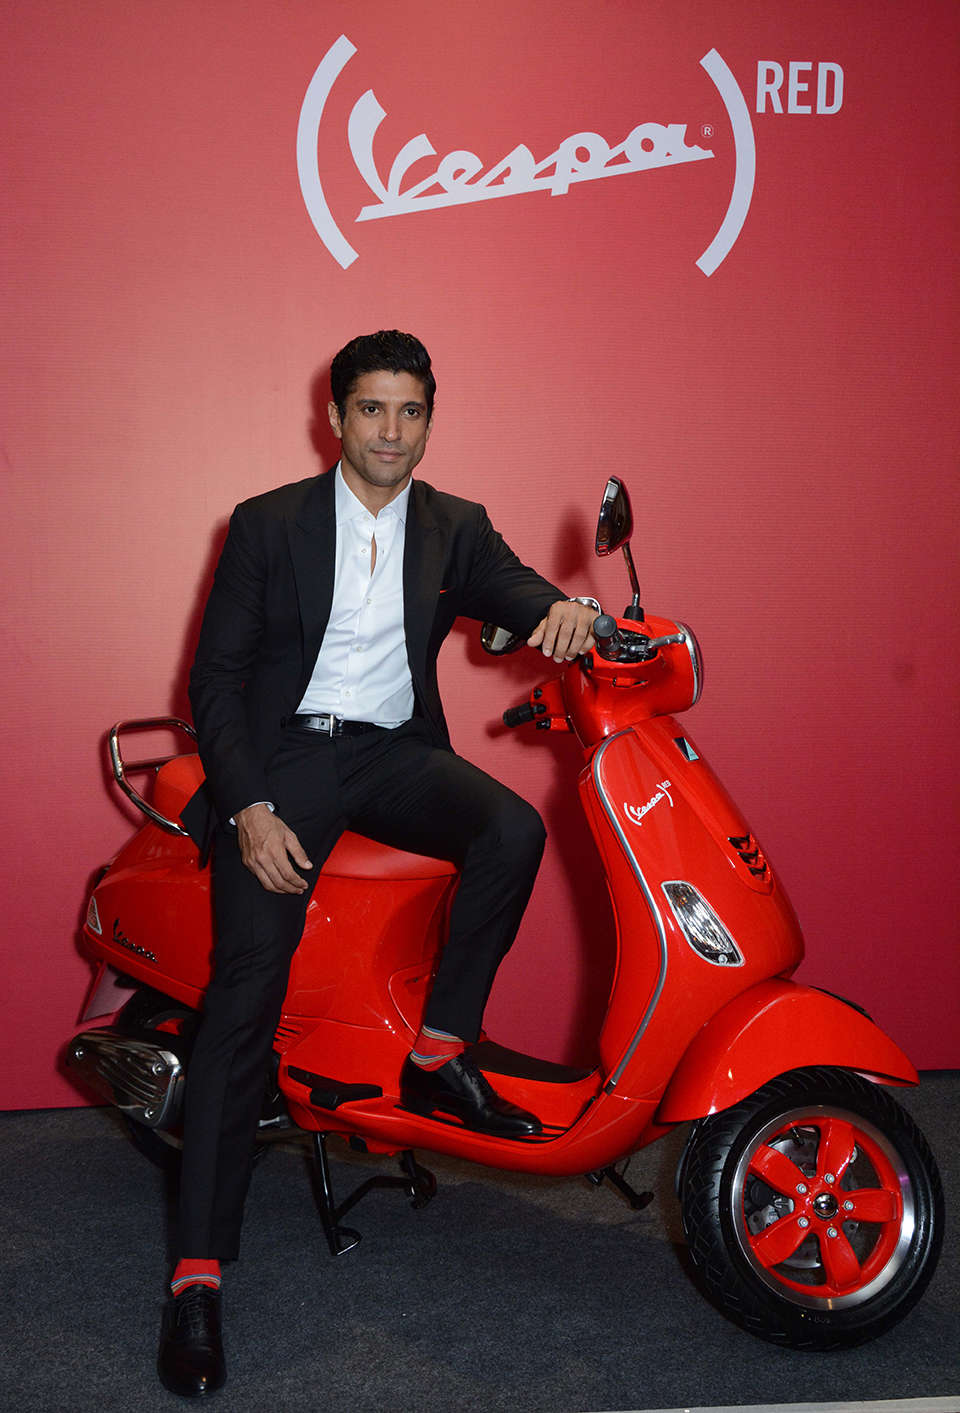 piaggio group launches the new vespa red vxl in india and boosts